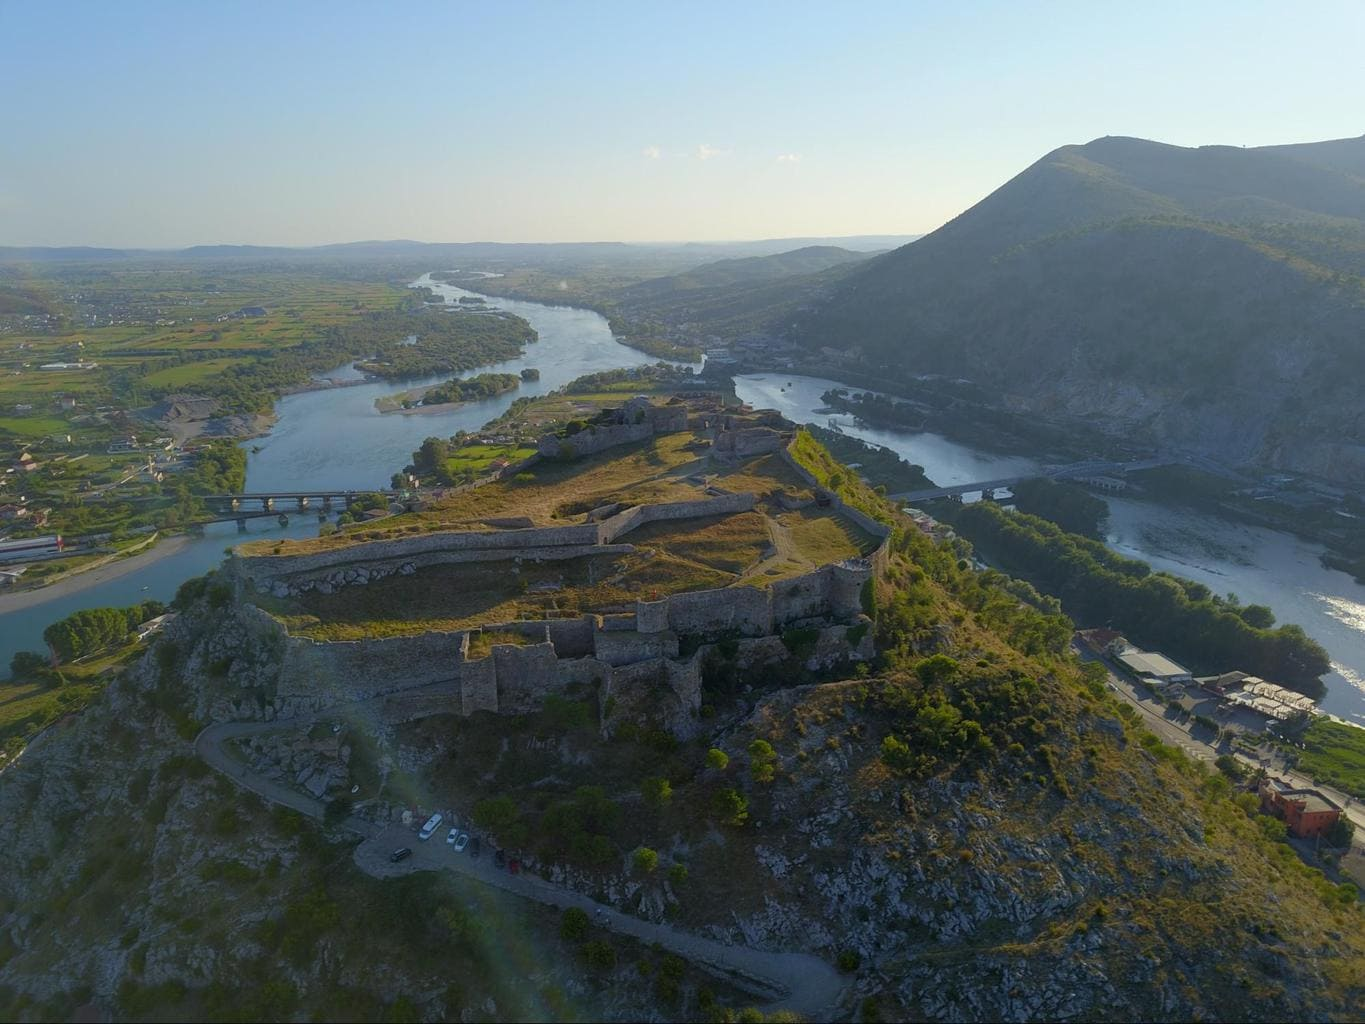 Rozafa Castle from above